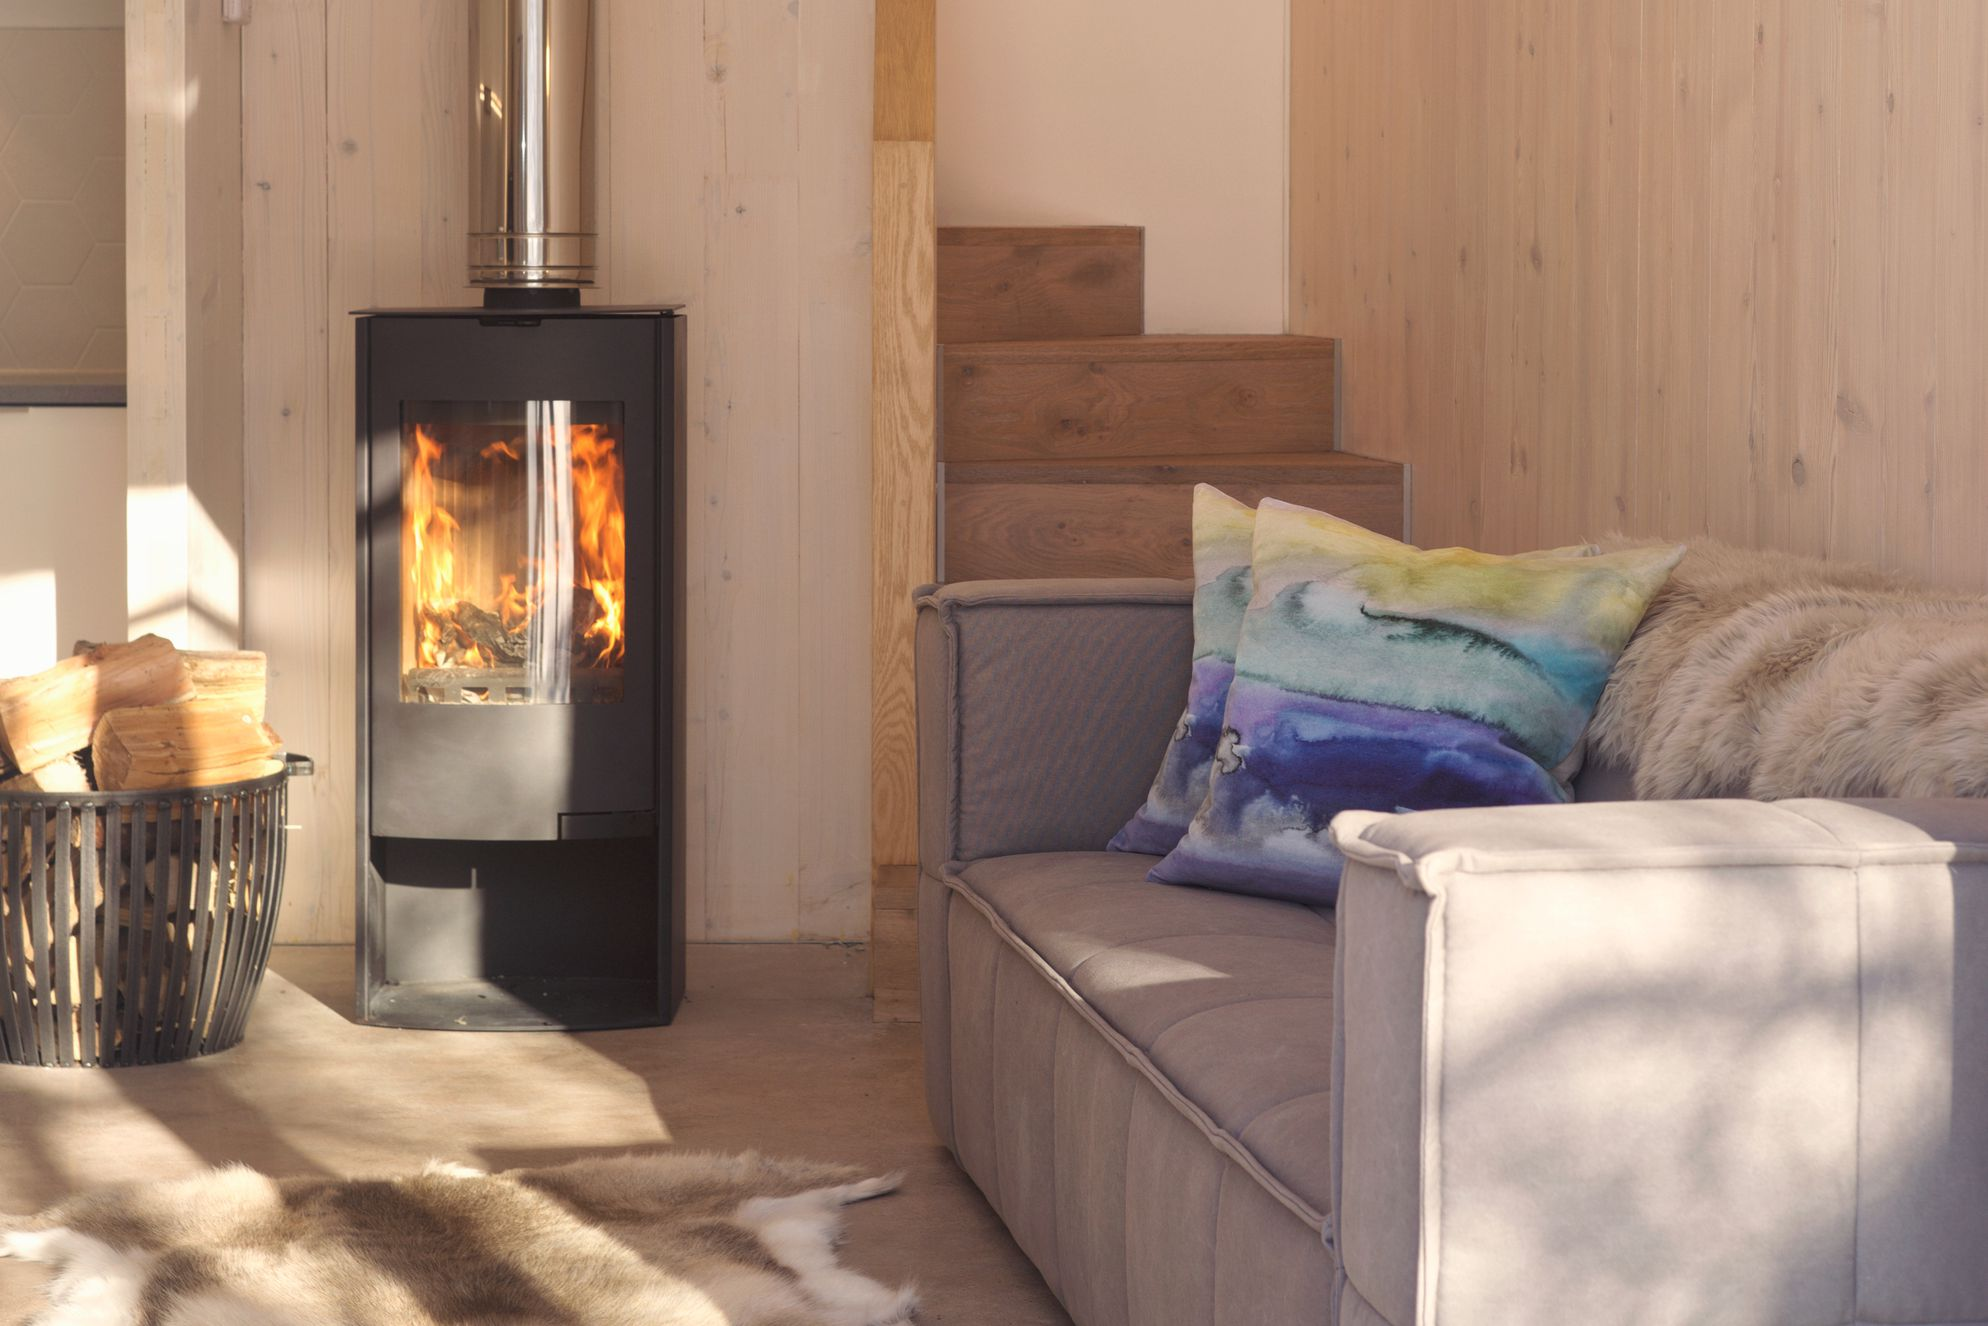 Comfy sofa in the living space at The Woodshed in Penicuik, Midlothian with real wood-burner and logs next to the fire